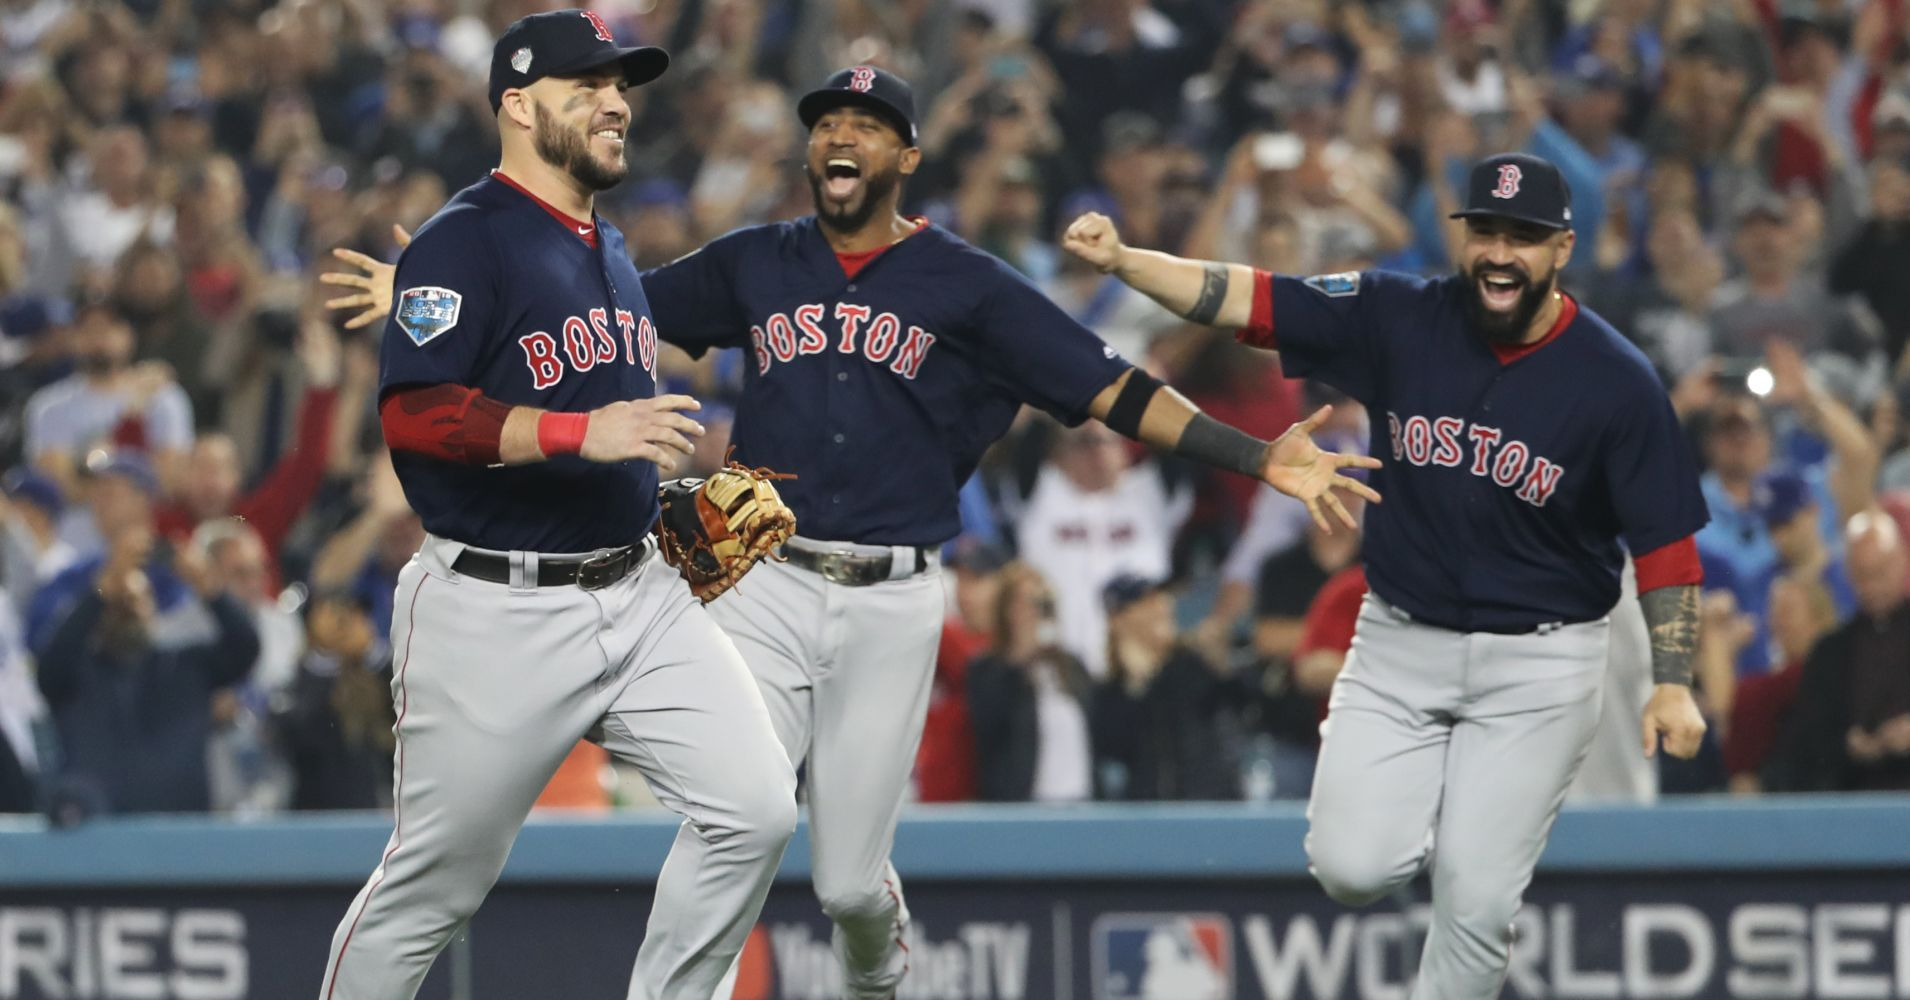 The Red Sox just won the World Series—here's how much